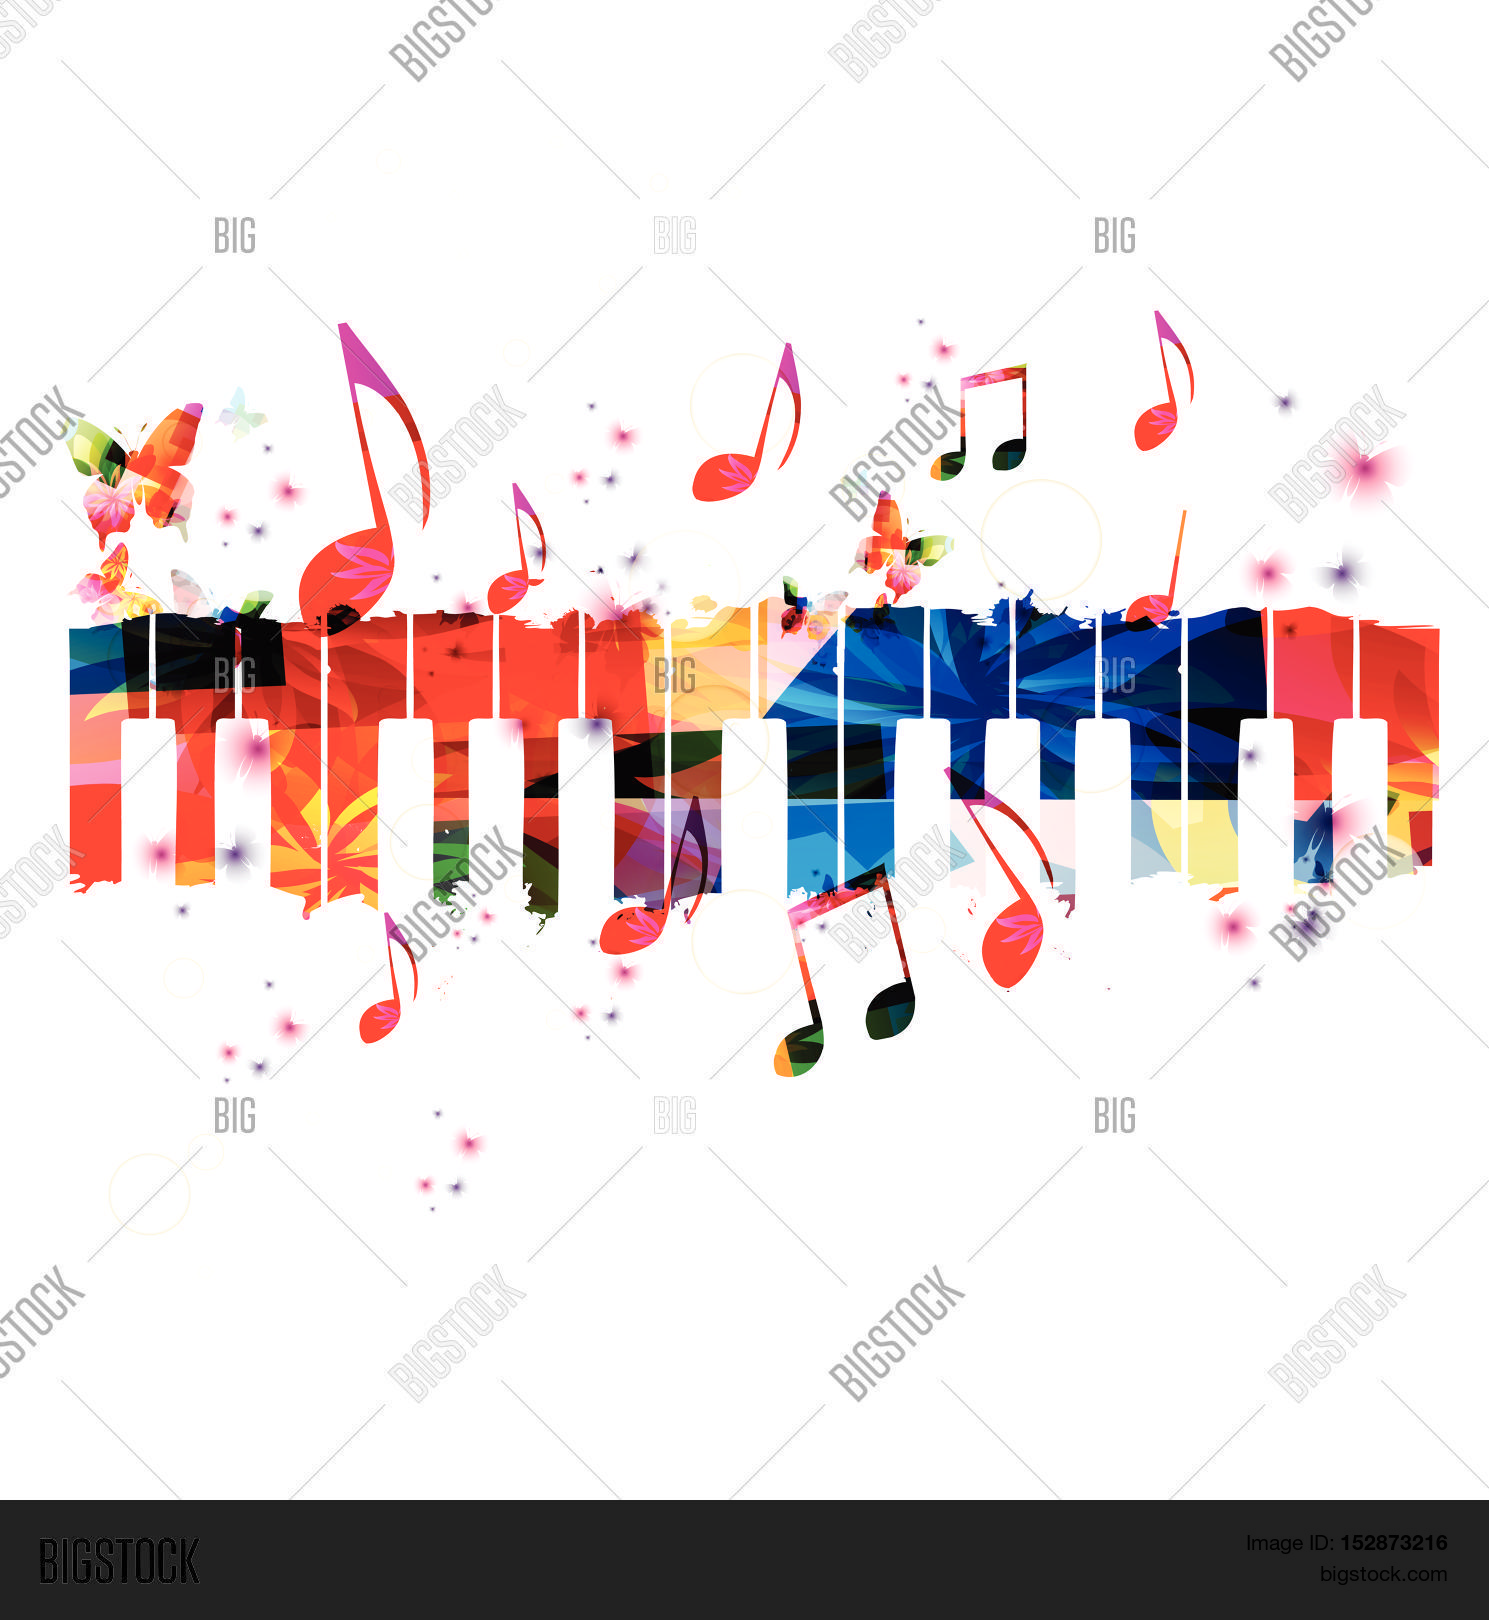 Poster design notes - Creative Music Style Template Vector Illustration Colorful Piano Keys Music Instrument Background With Music